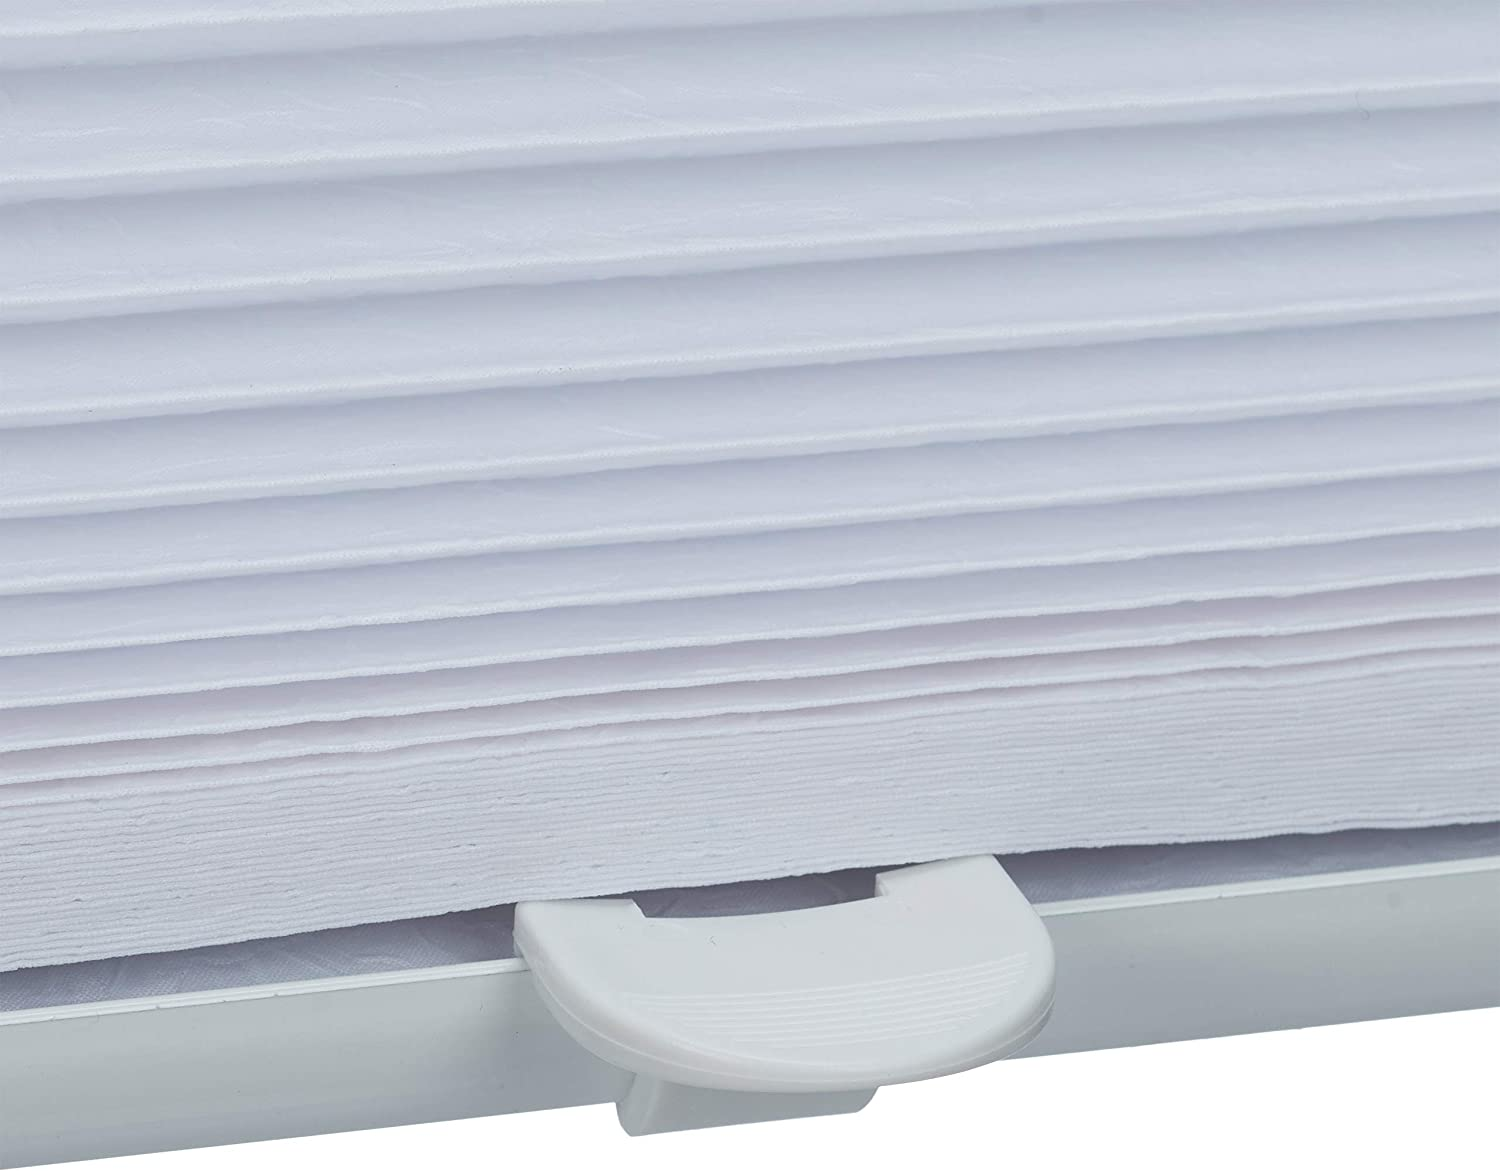 Relaxdays Pleated Blinds Adhesive Klemmfix Shades Folding Roller No-Drilling White 60 x 130 cm Transparent